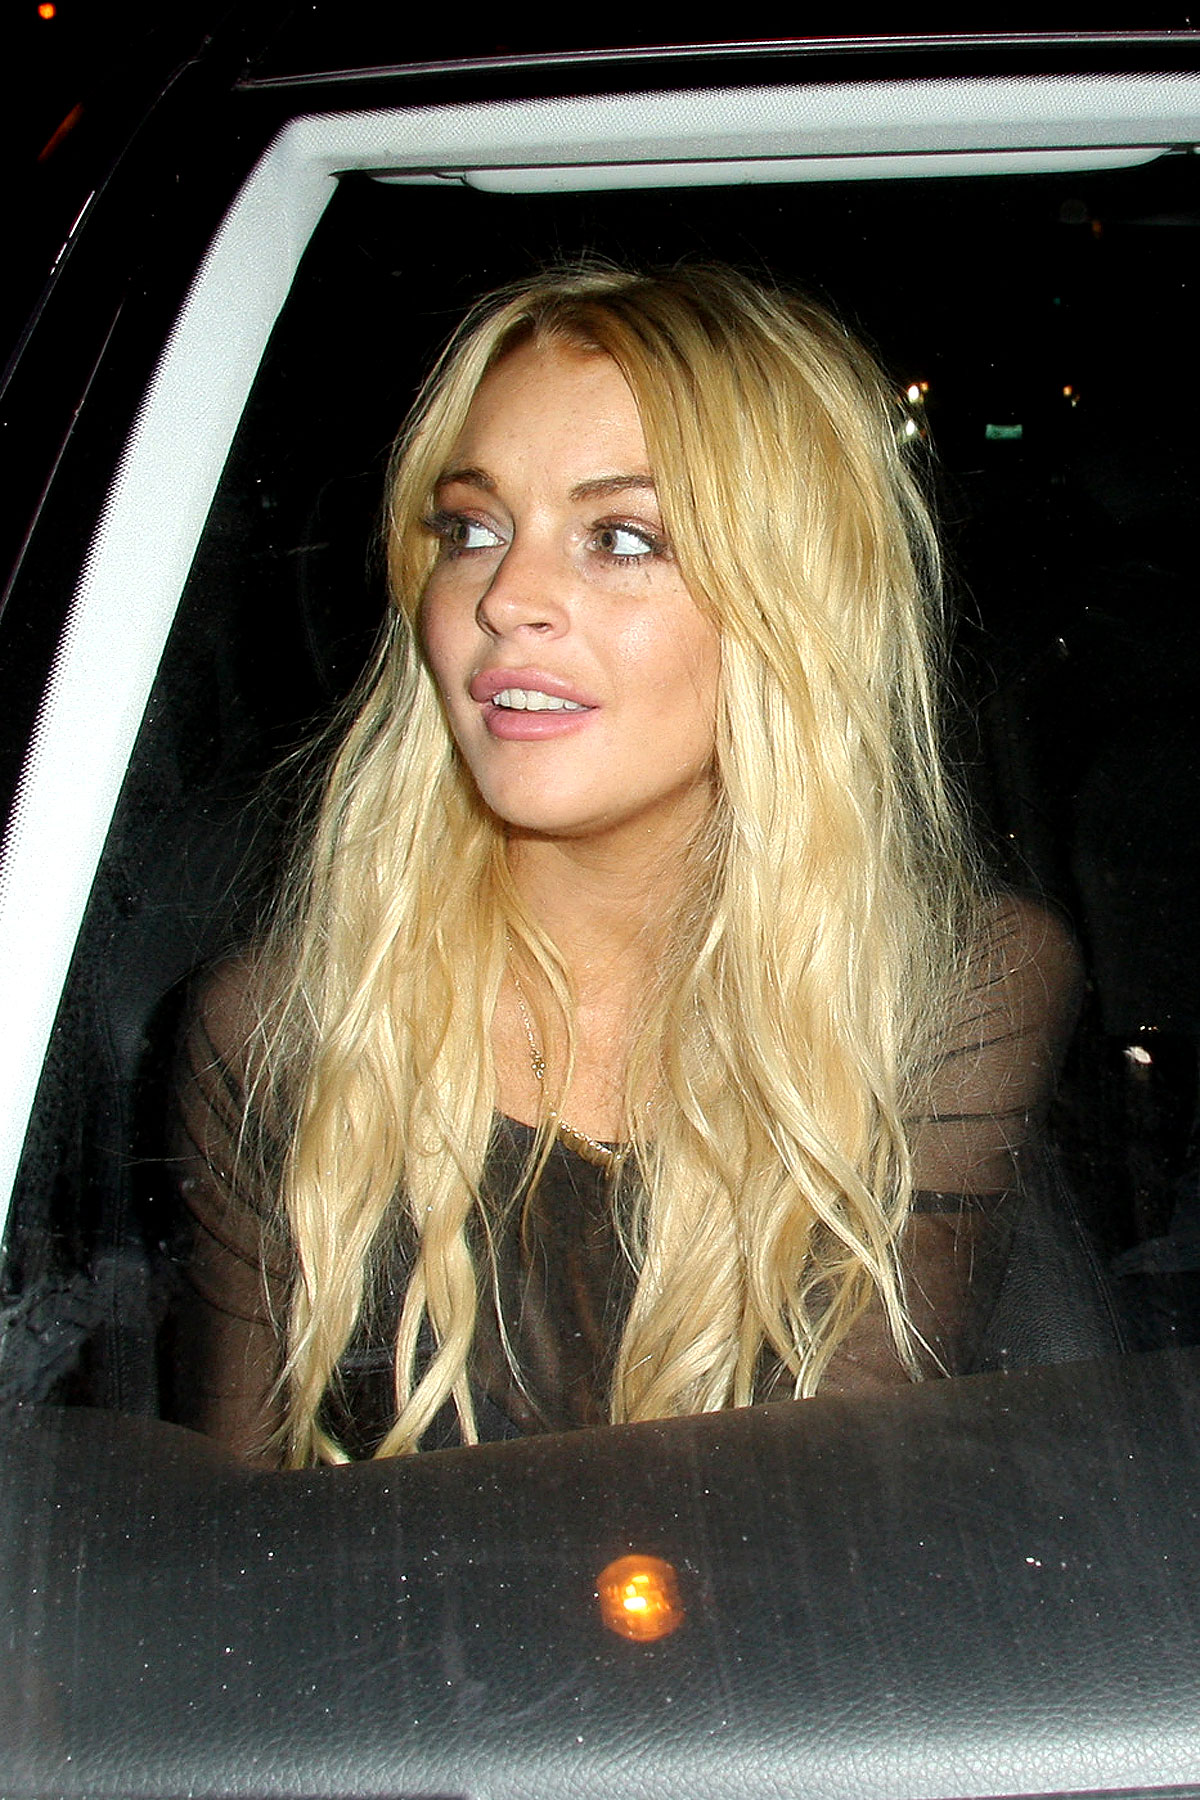 Lindsay Lohan Turns 24, Gets Punched In The Face (PHOTOS)